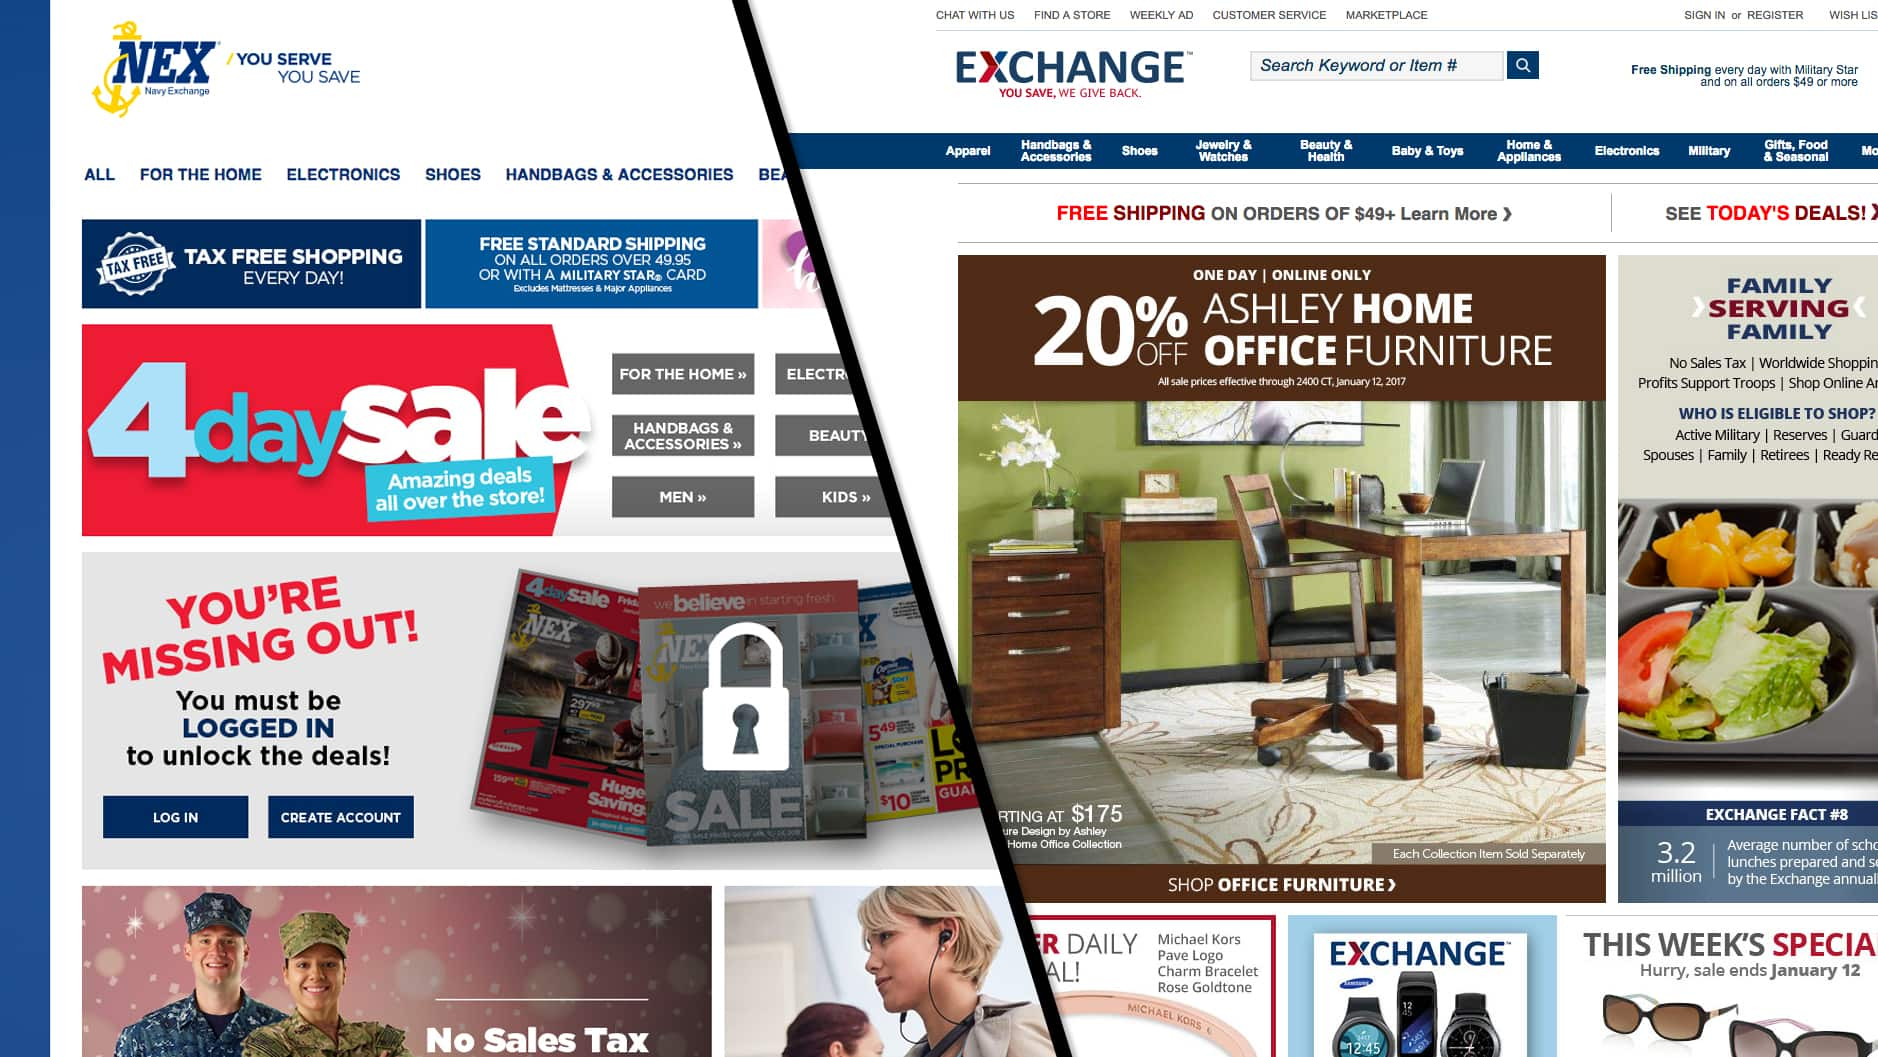 All Military Veterans can shop AAFES and/or Navy Exchange starting on Nov 11, 2017